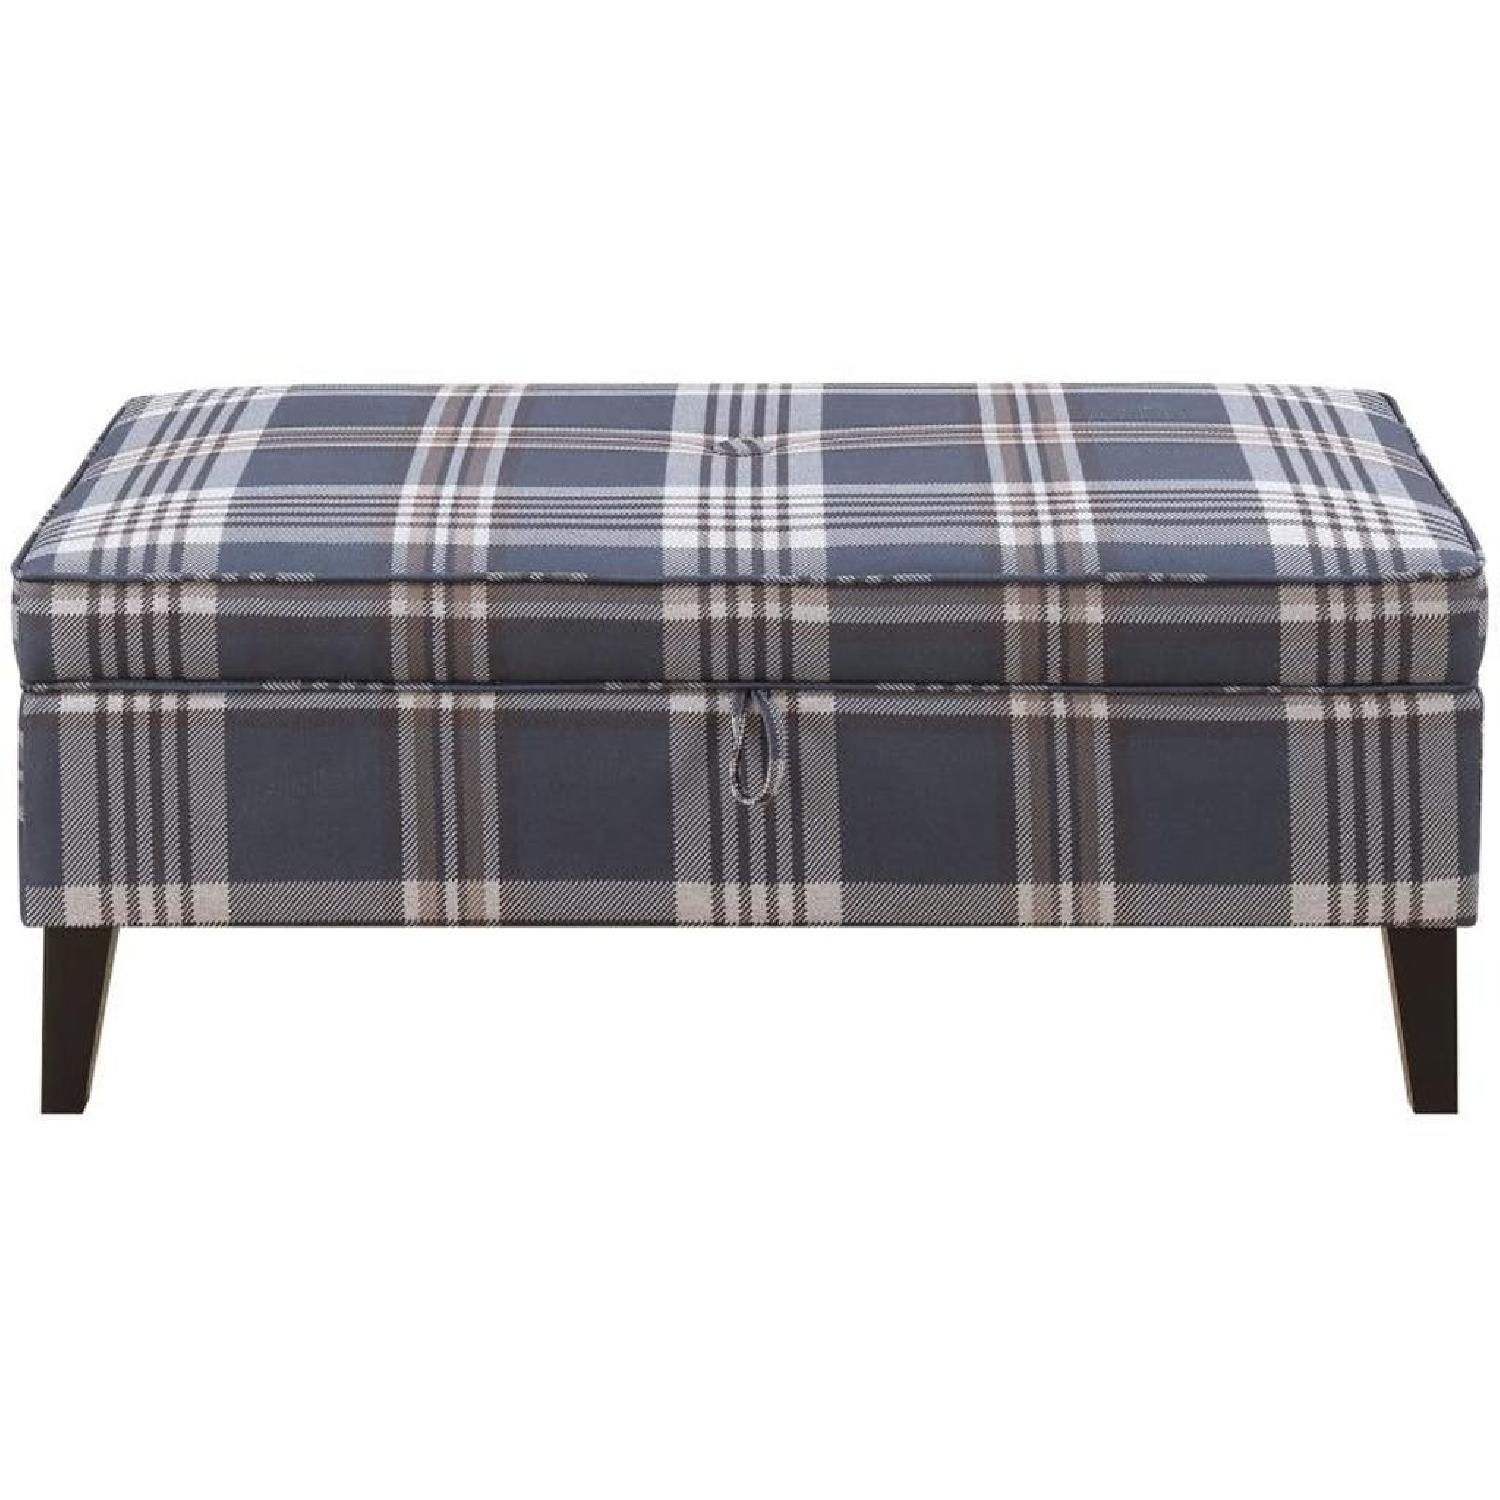 Awesome Storage Bench Ottoman In Wool Like Plaid Fabric Living Machost Co Dining Chair Design Ideas Machostcouk